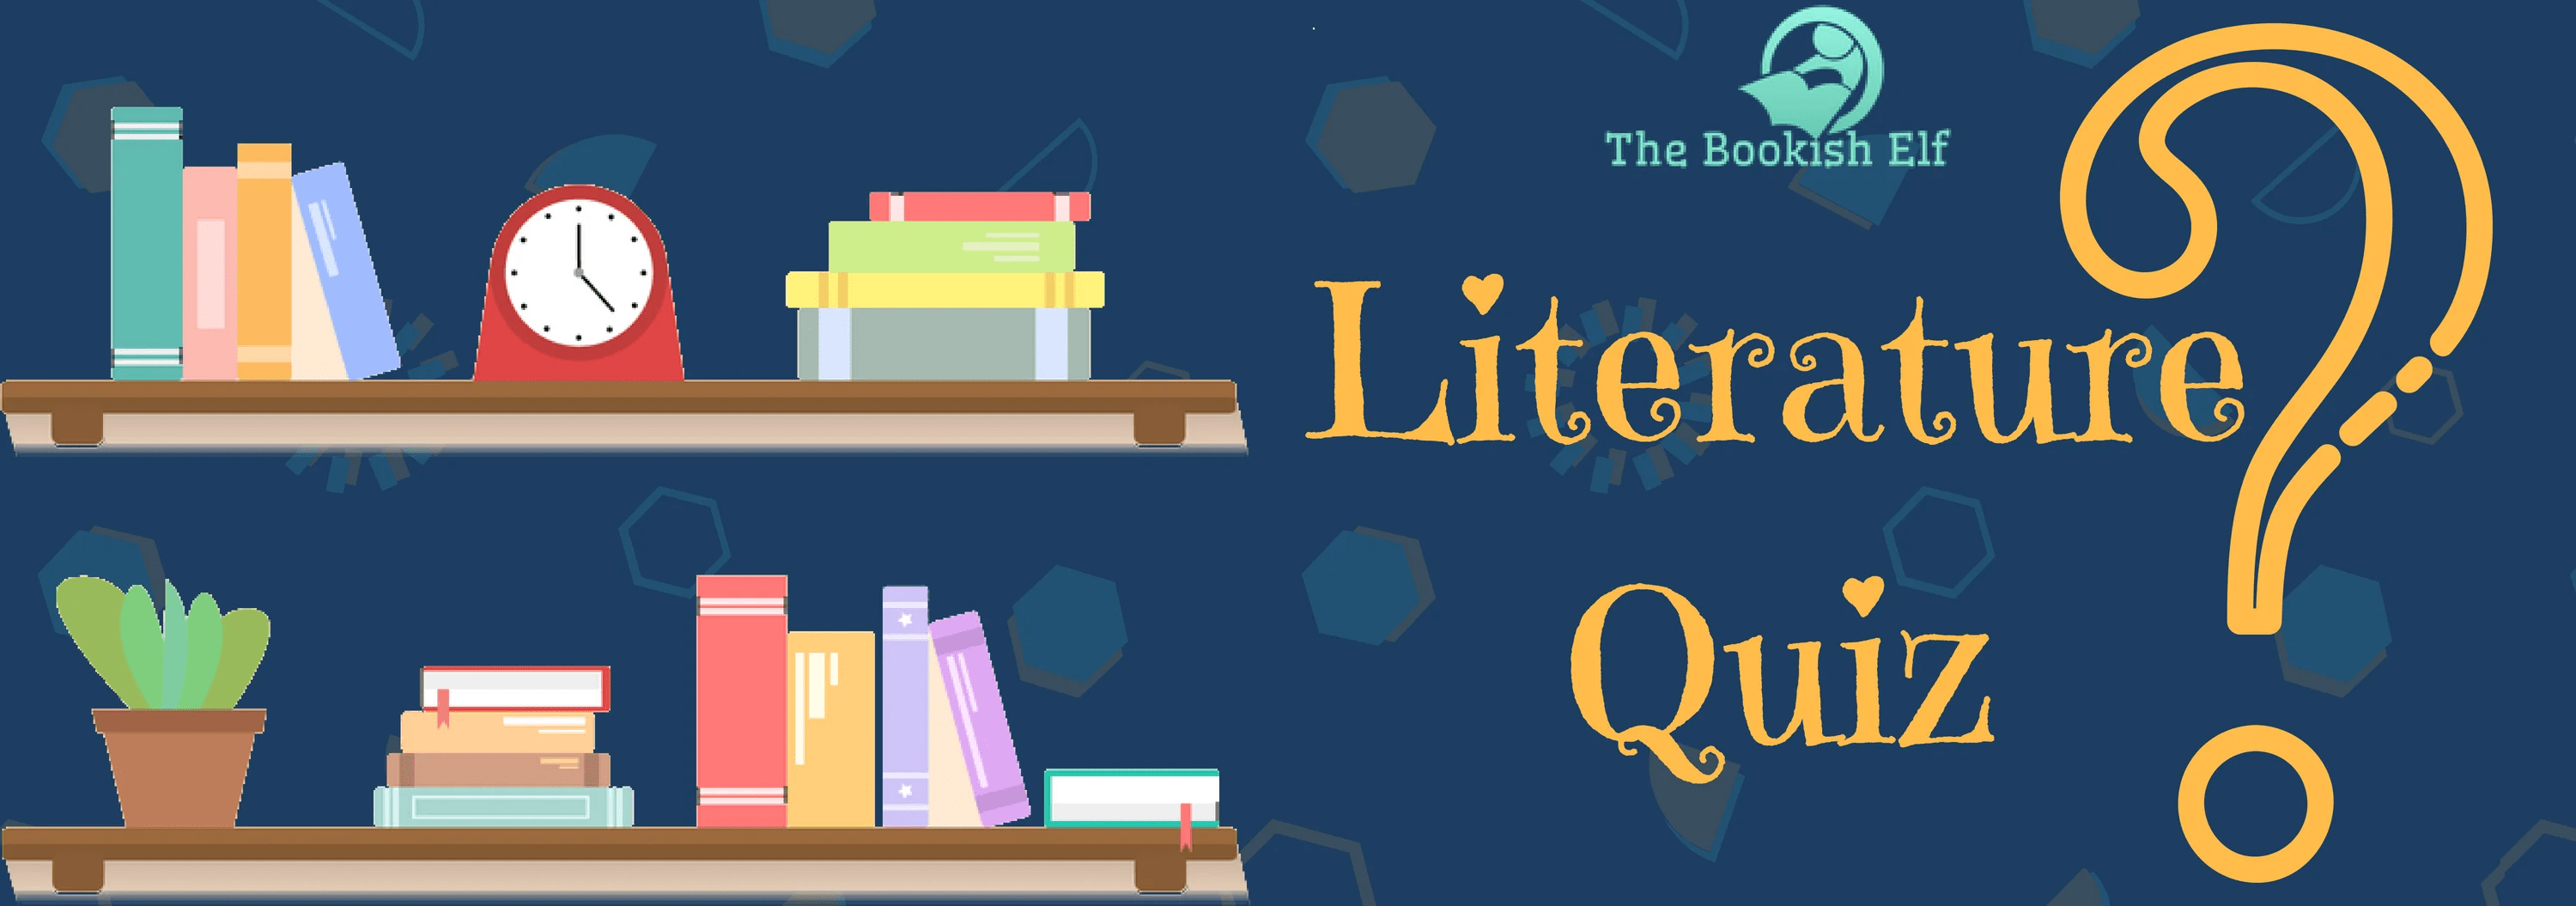 The Bookish Elf Quiz: Answer the Literature Questions